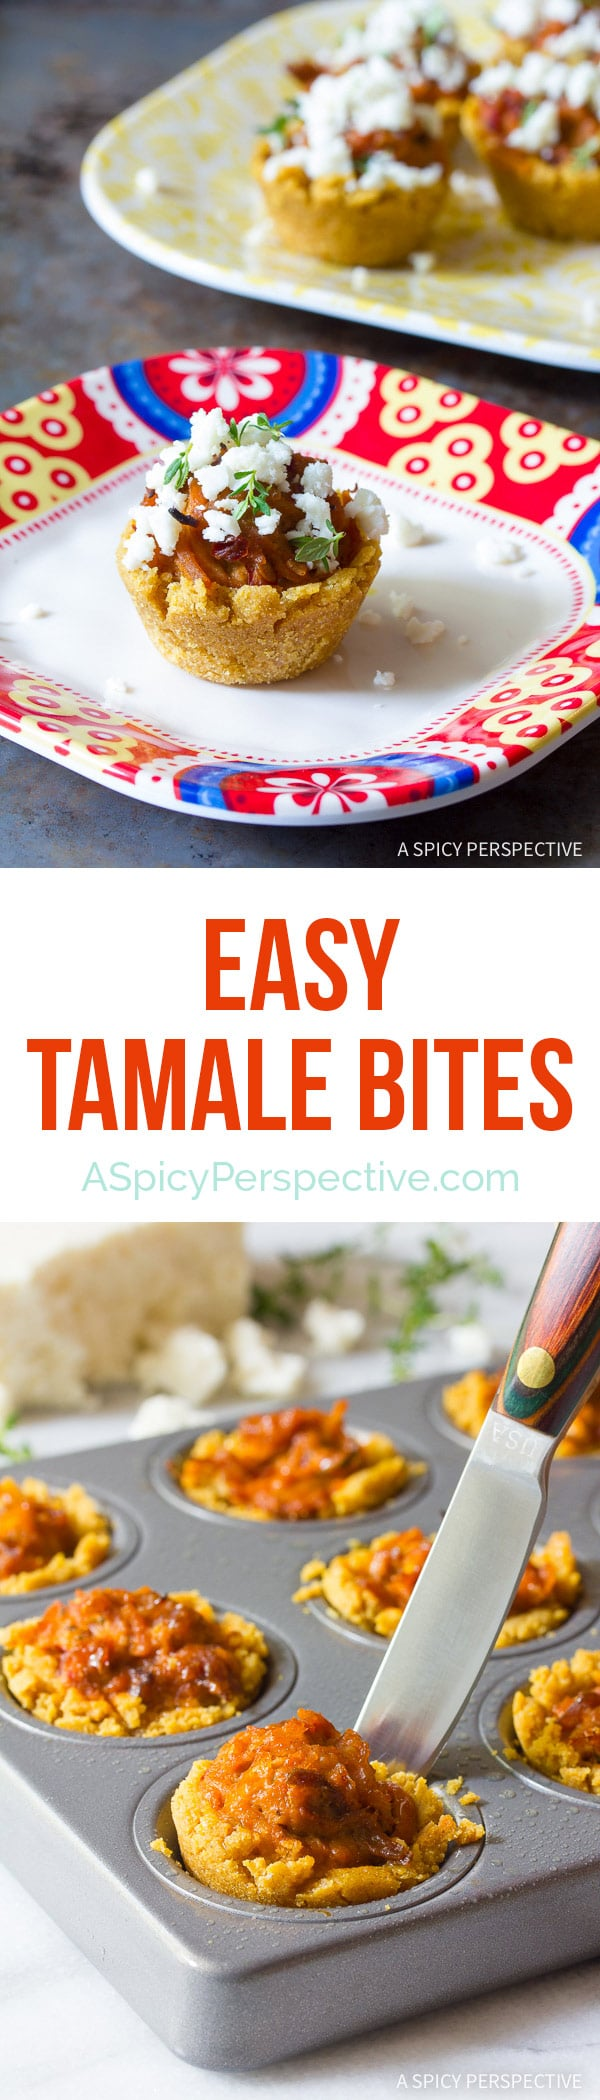 Tamale Bites Recipe - Page 2 of 2 - A Spicy Perspective